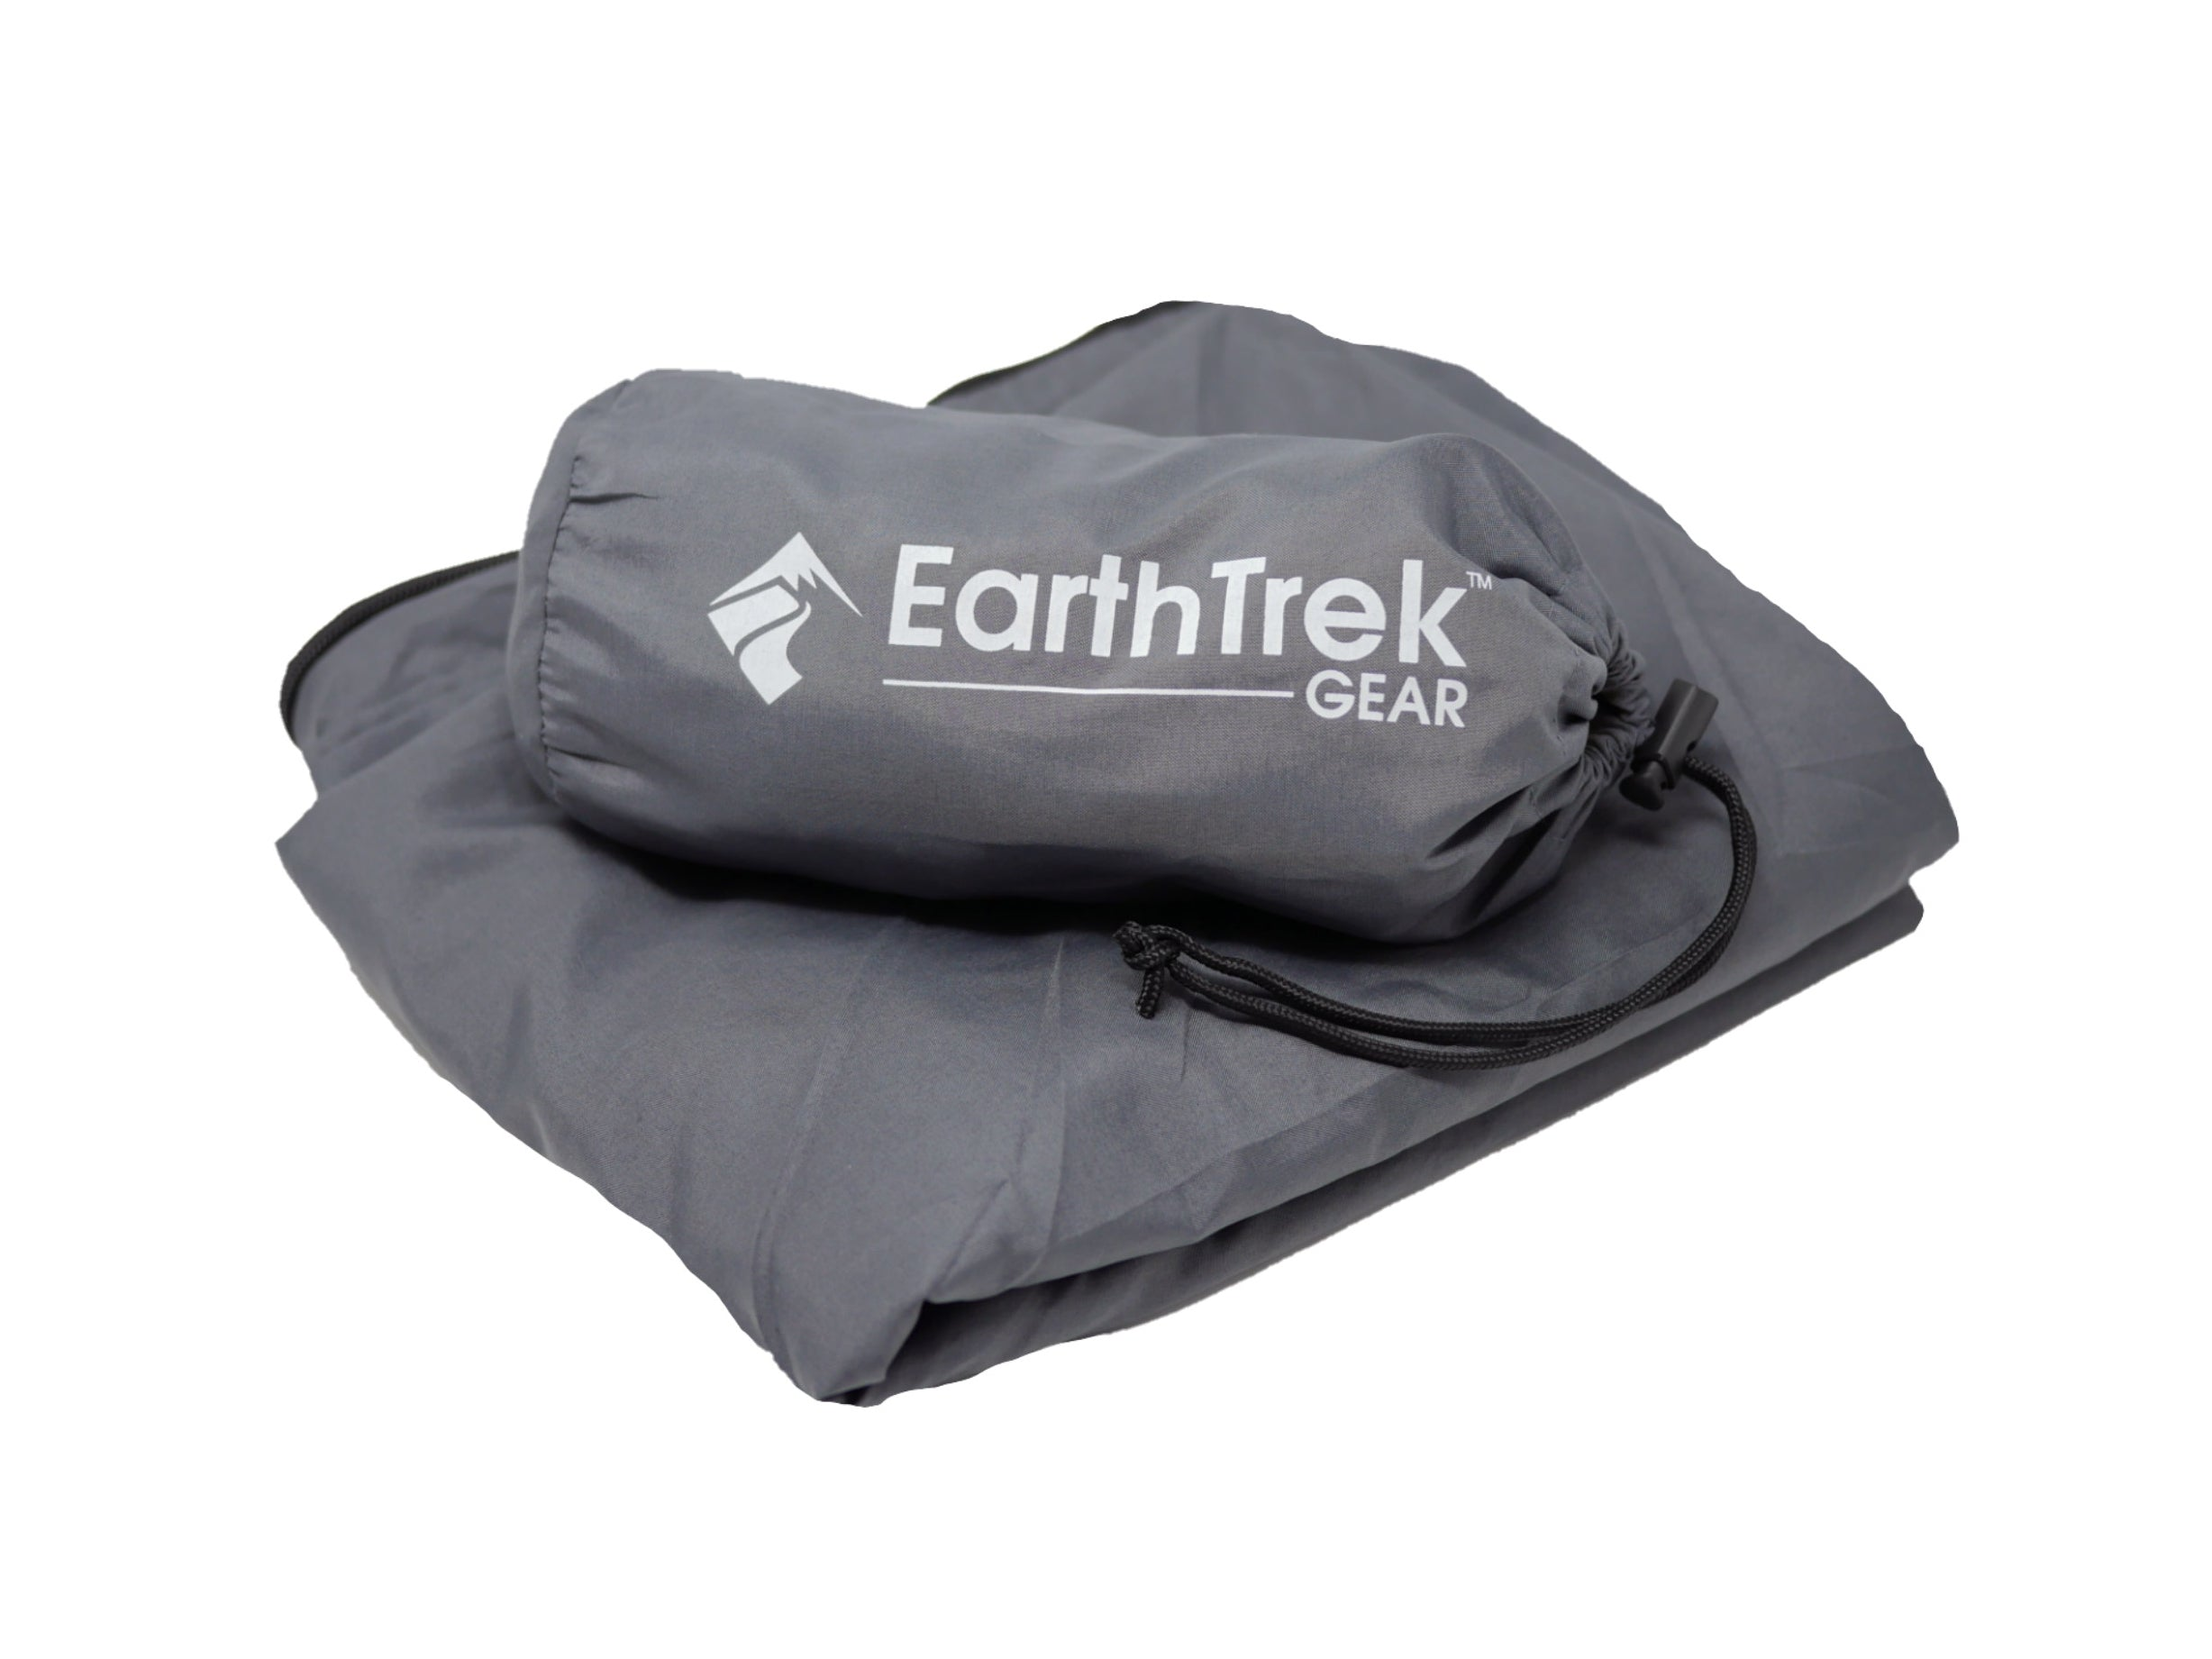 extra-large-comfy-travel-sleepingbag-liner-set